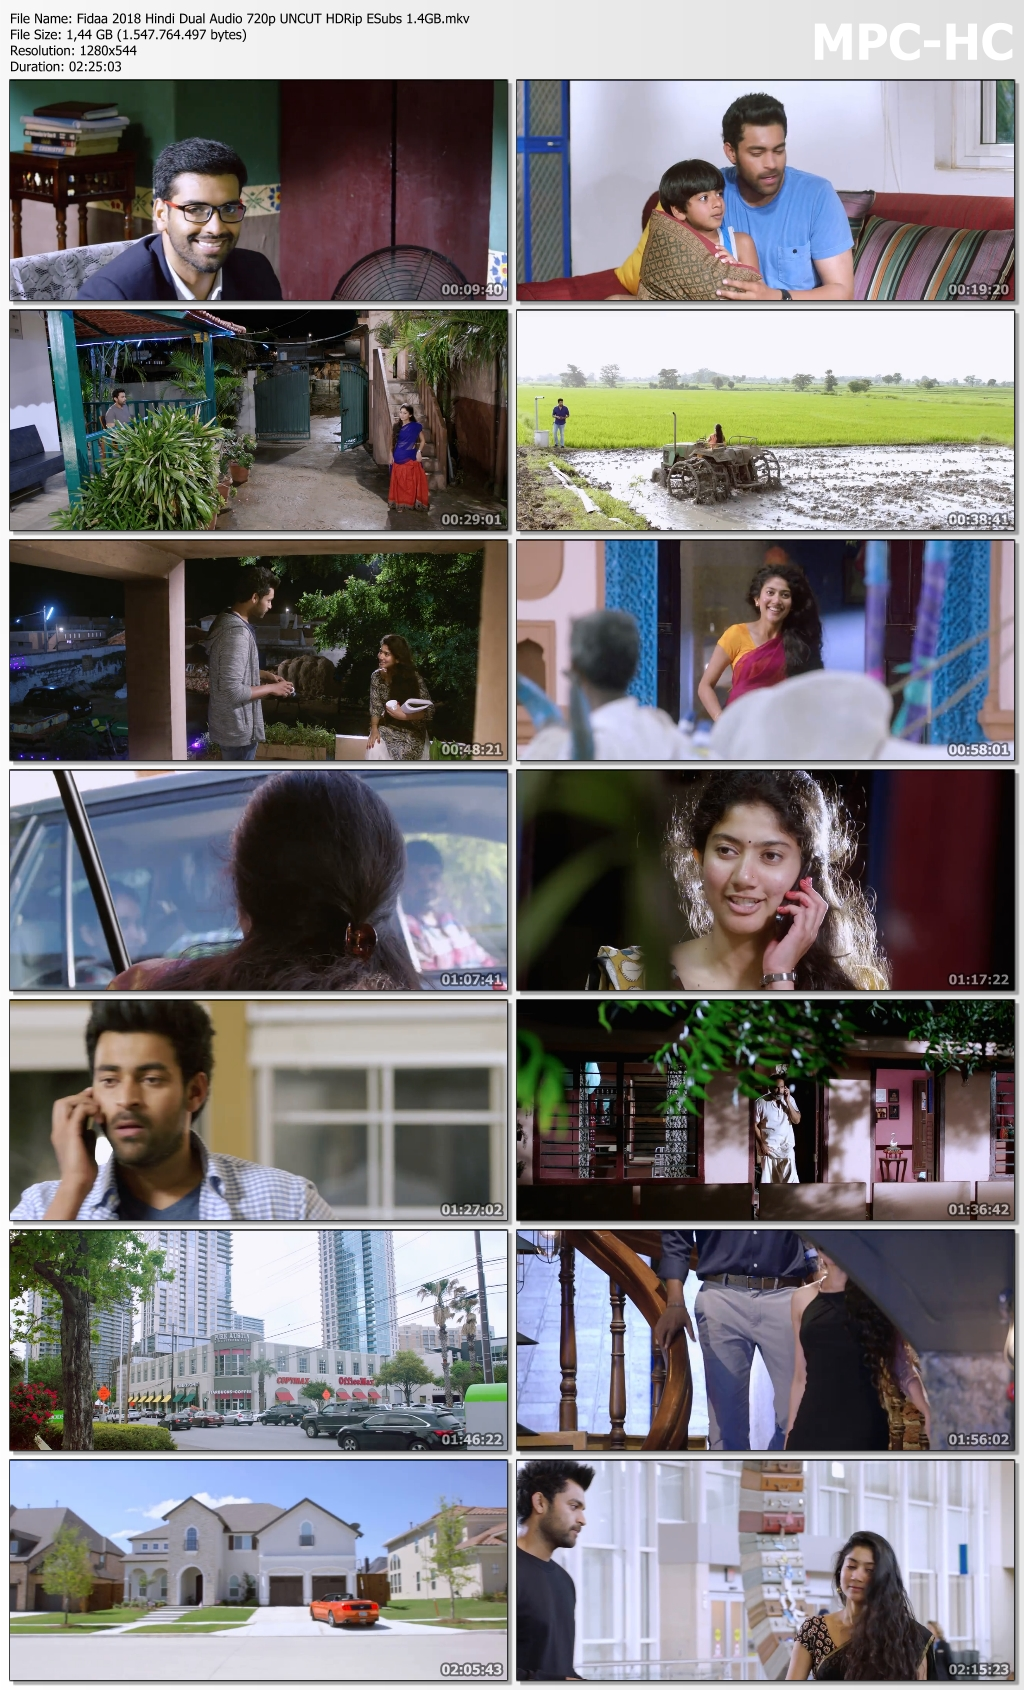 Fidaa-2018-Hindi-Dual-Audio-720p-UNCUT-HDRip-ESubs-1-4-GB-mkv-thumbs